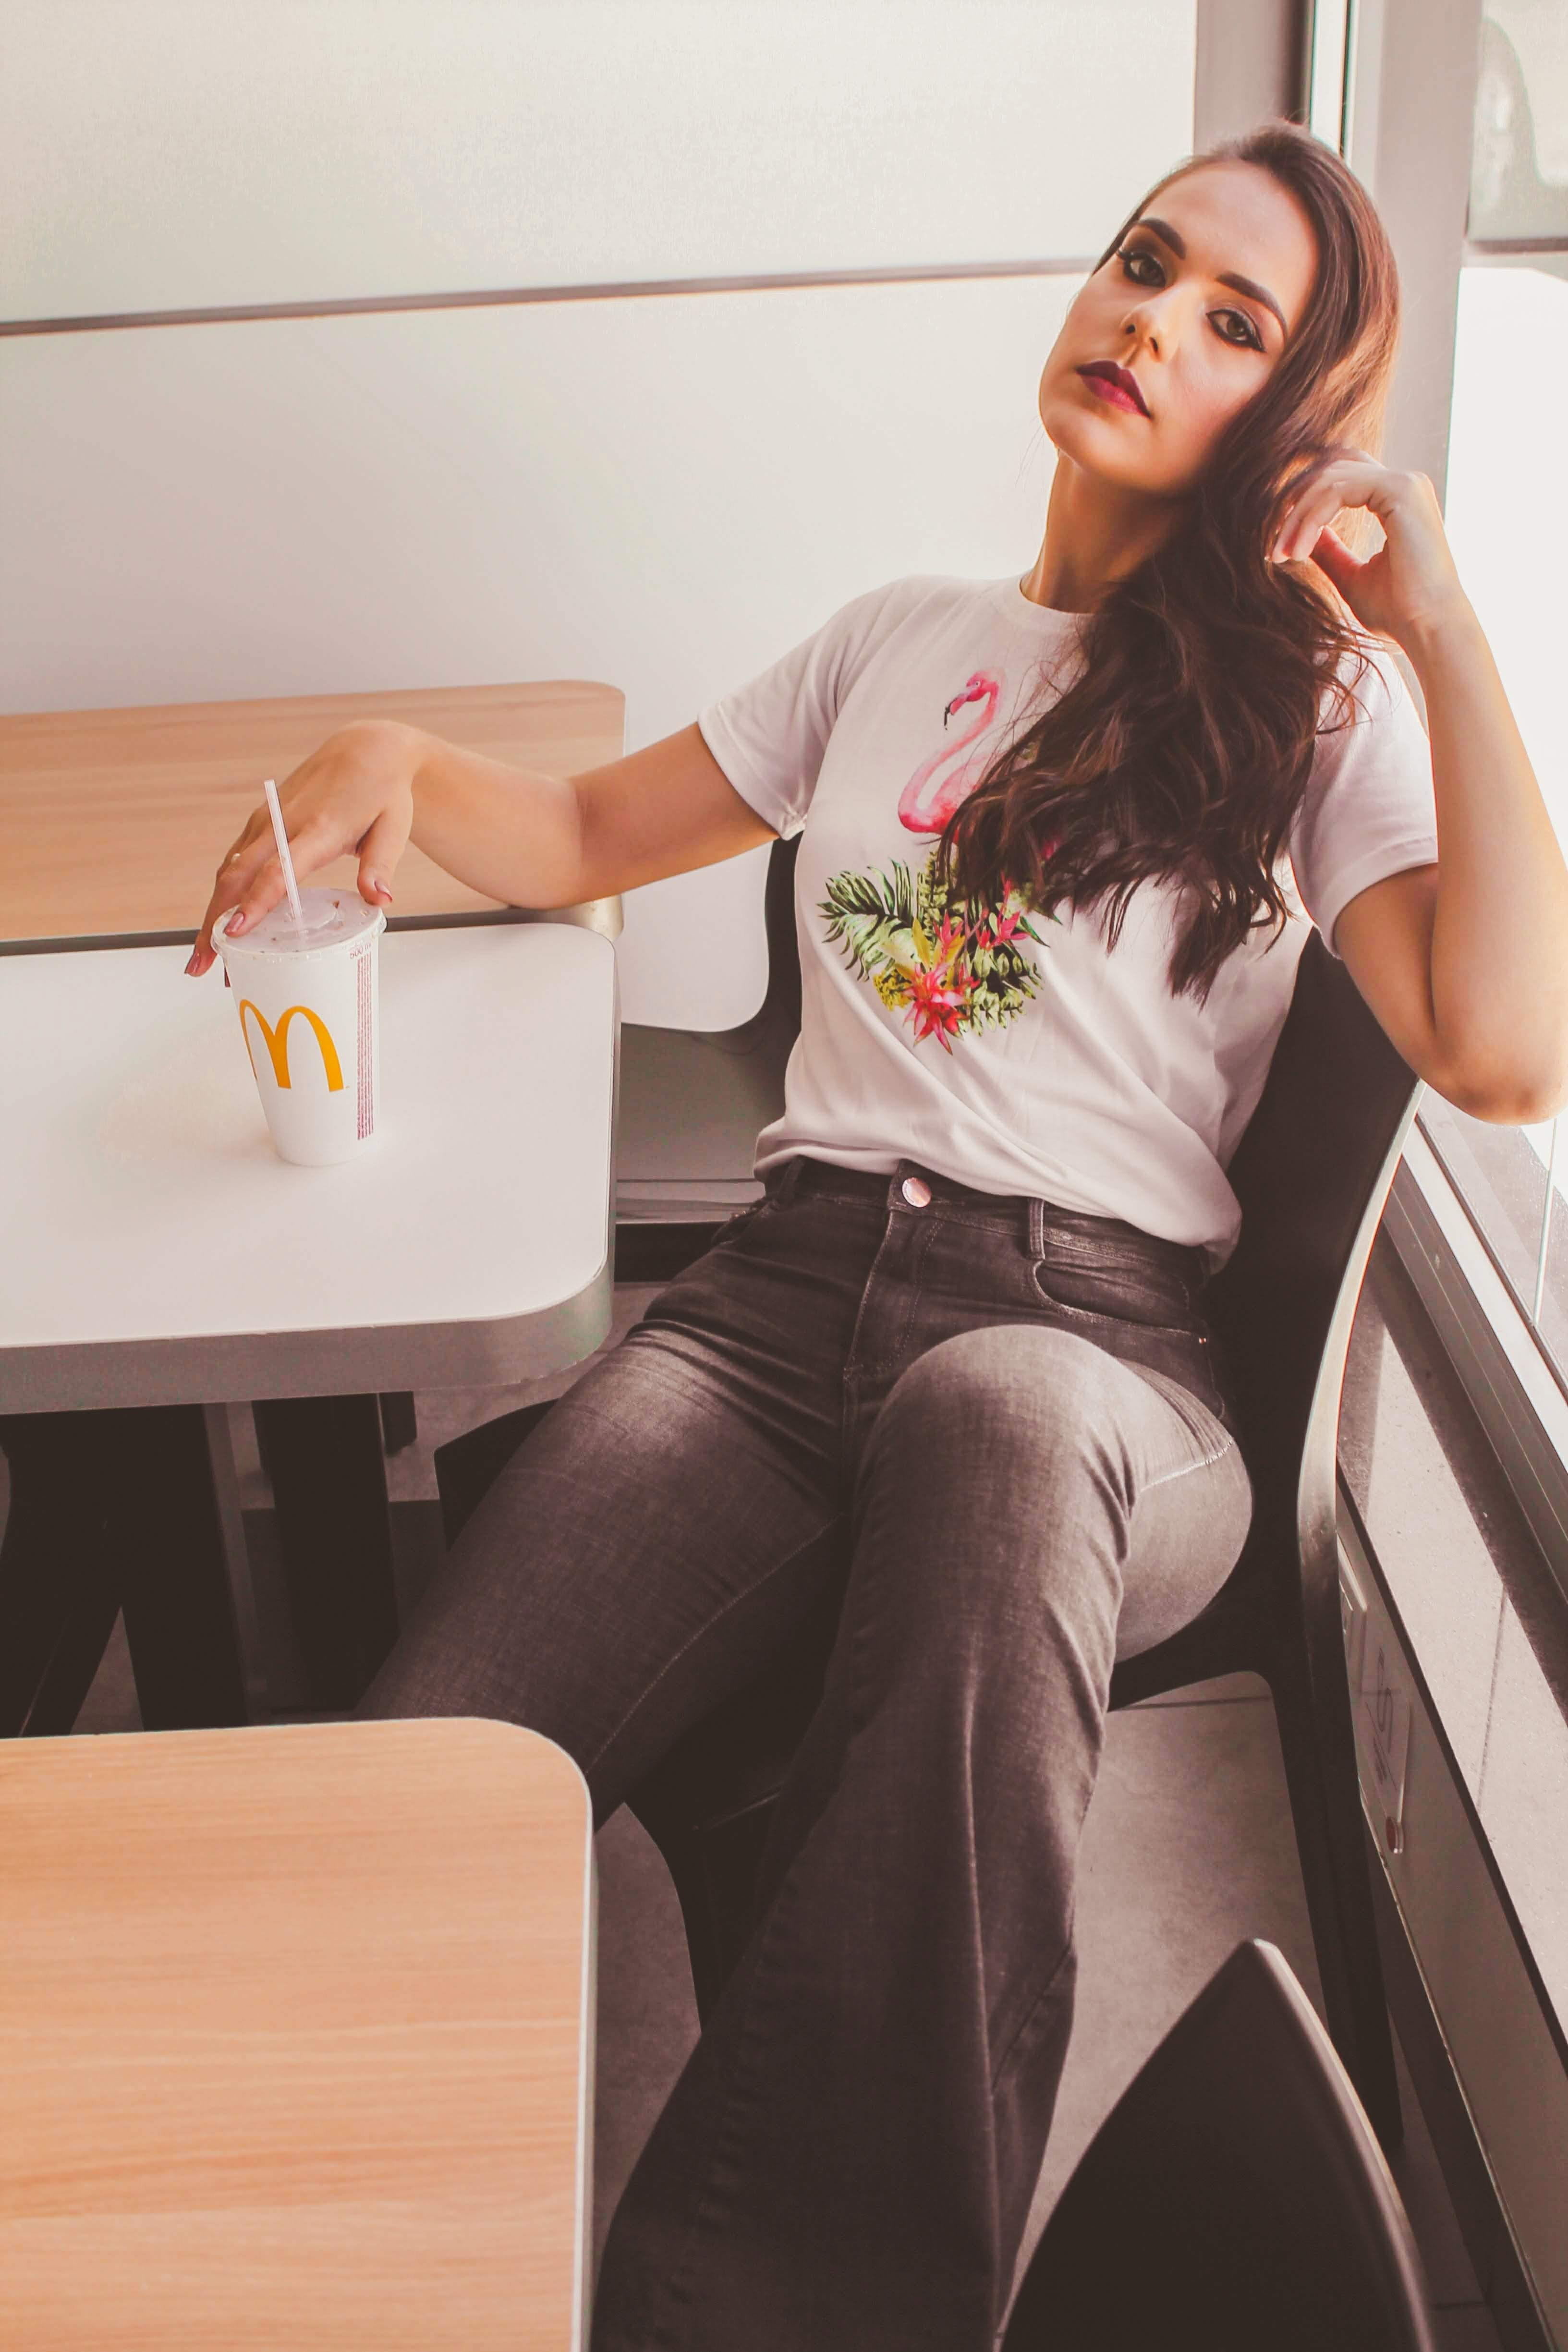 Woman Sitting Down Holding Mcdonald's Cup